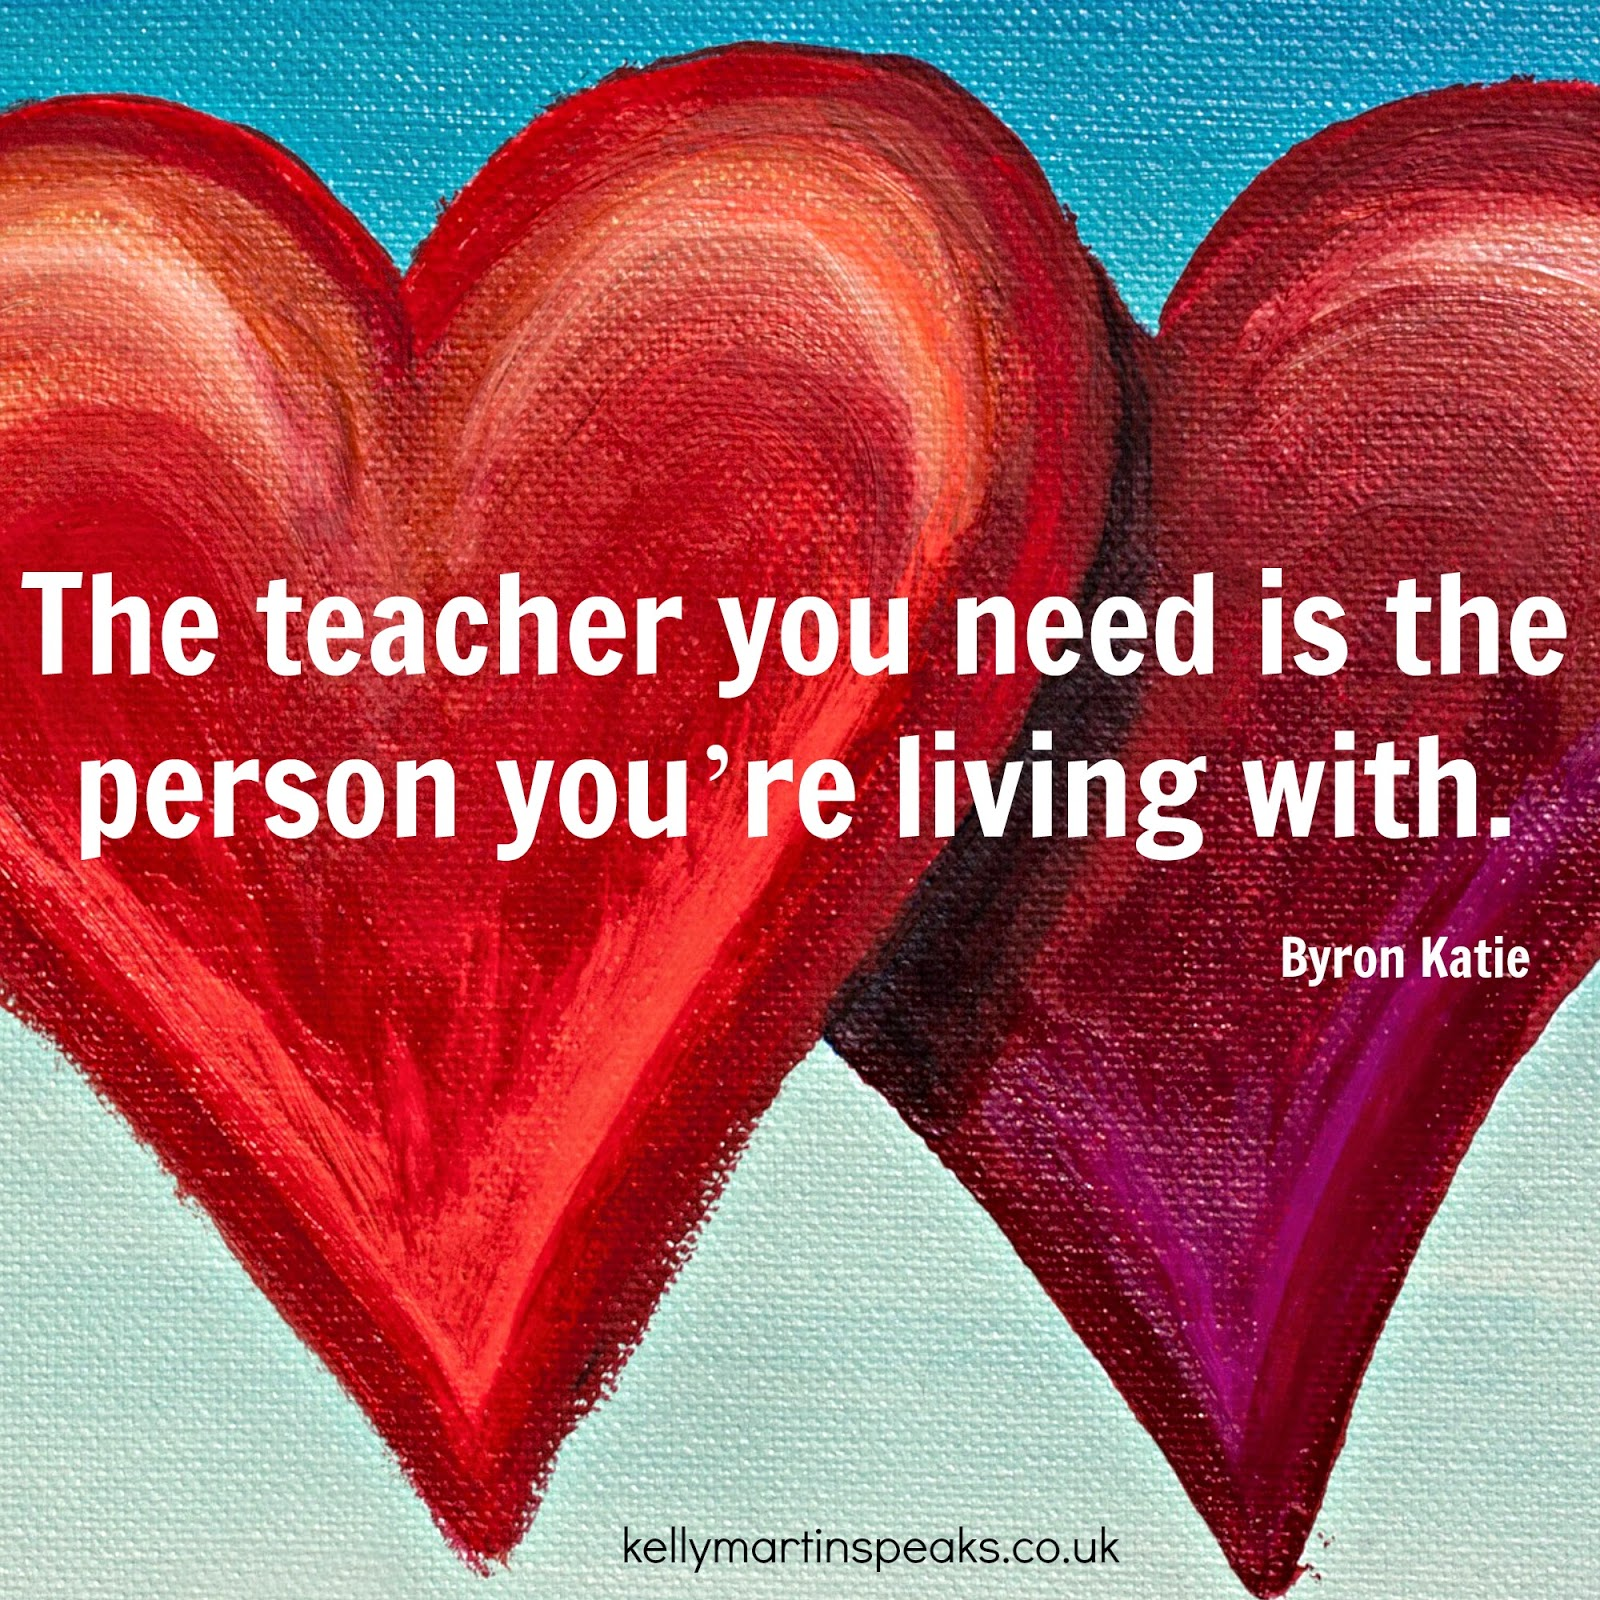 Byron Katie quote The Teacher You Need